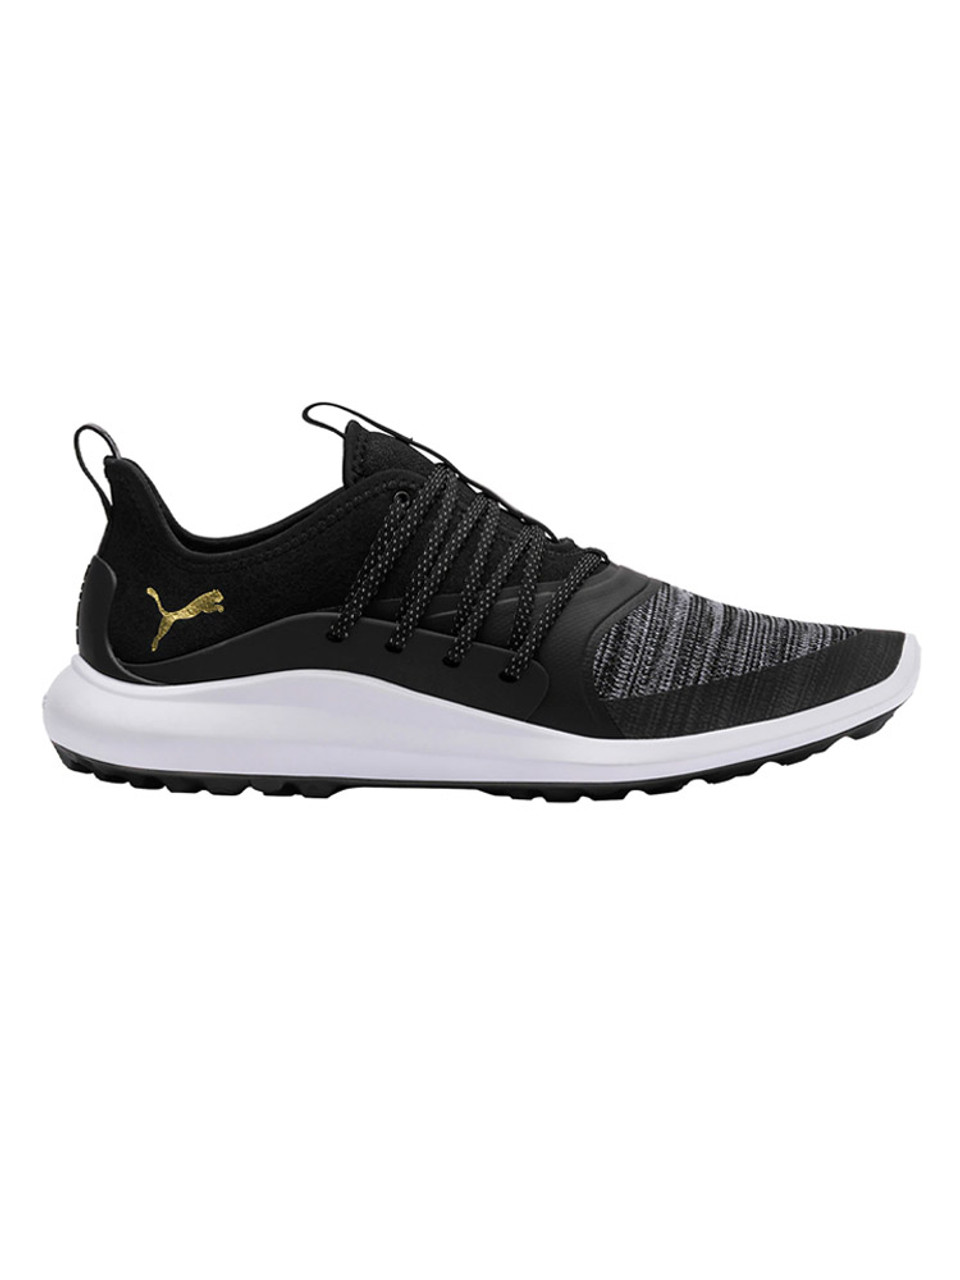 Puma Ignite NXT Solelace Golf Shoes BlackTeam Gold